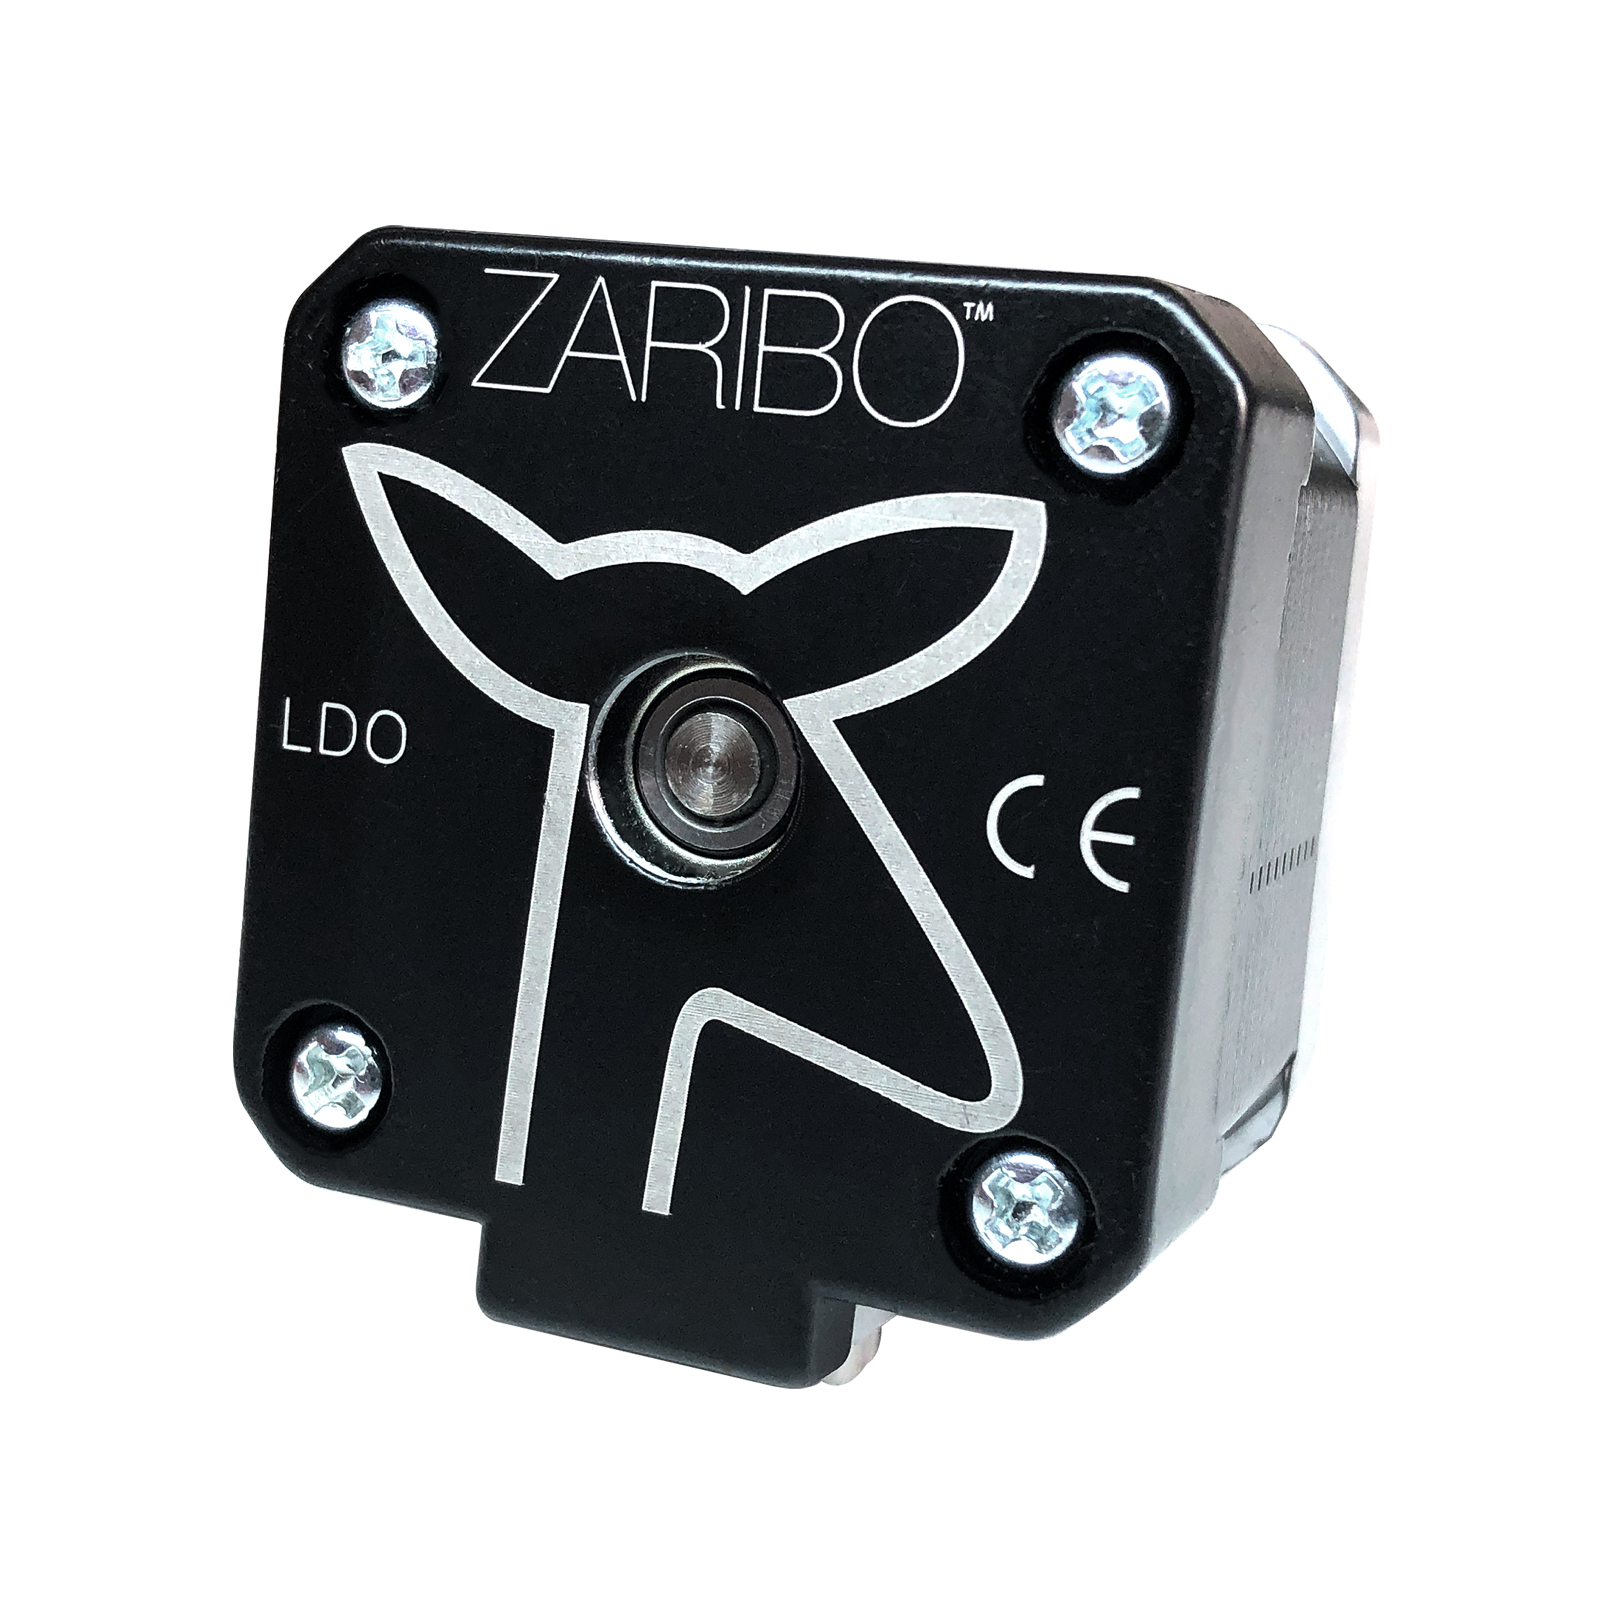 NEma 17 Stepper motor for 3D printers Zaribo Prusa Cartesian